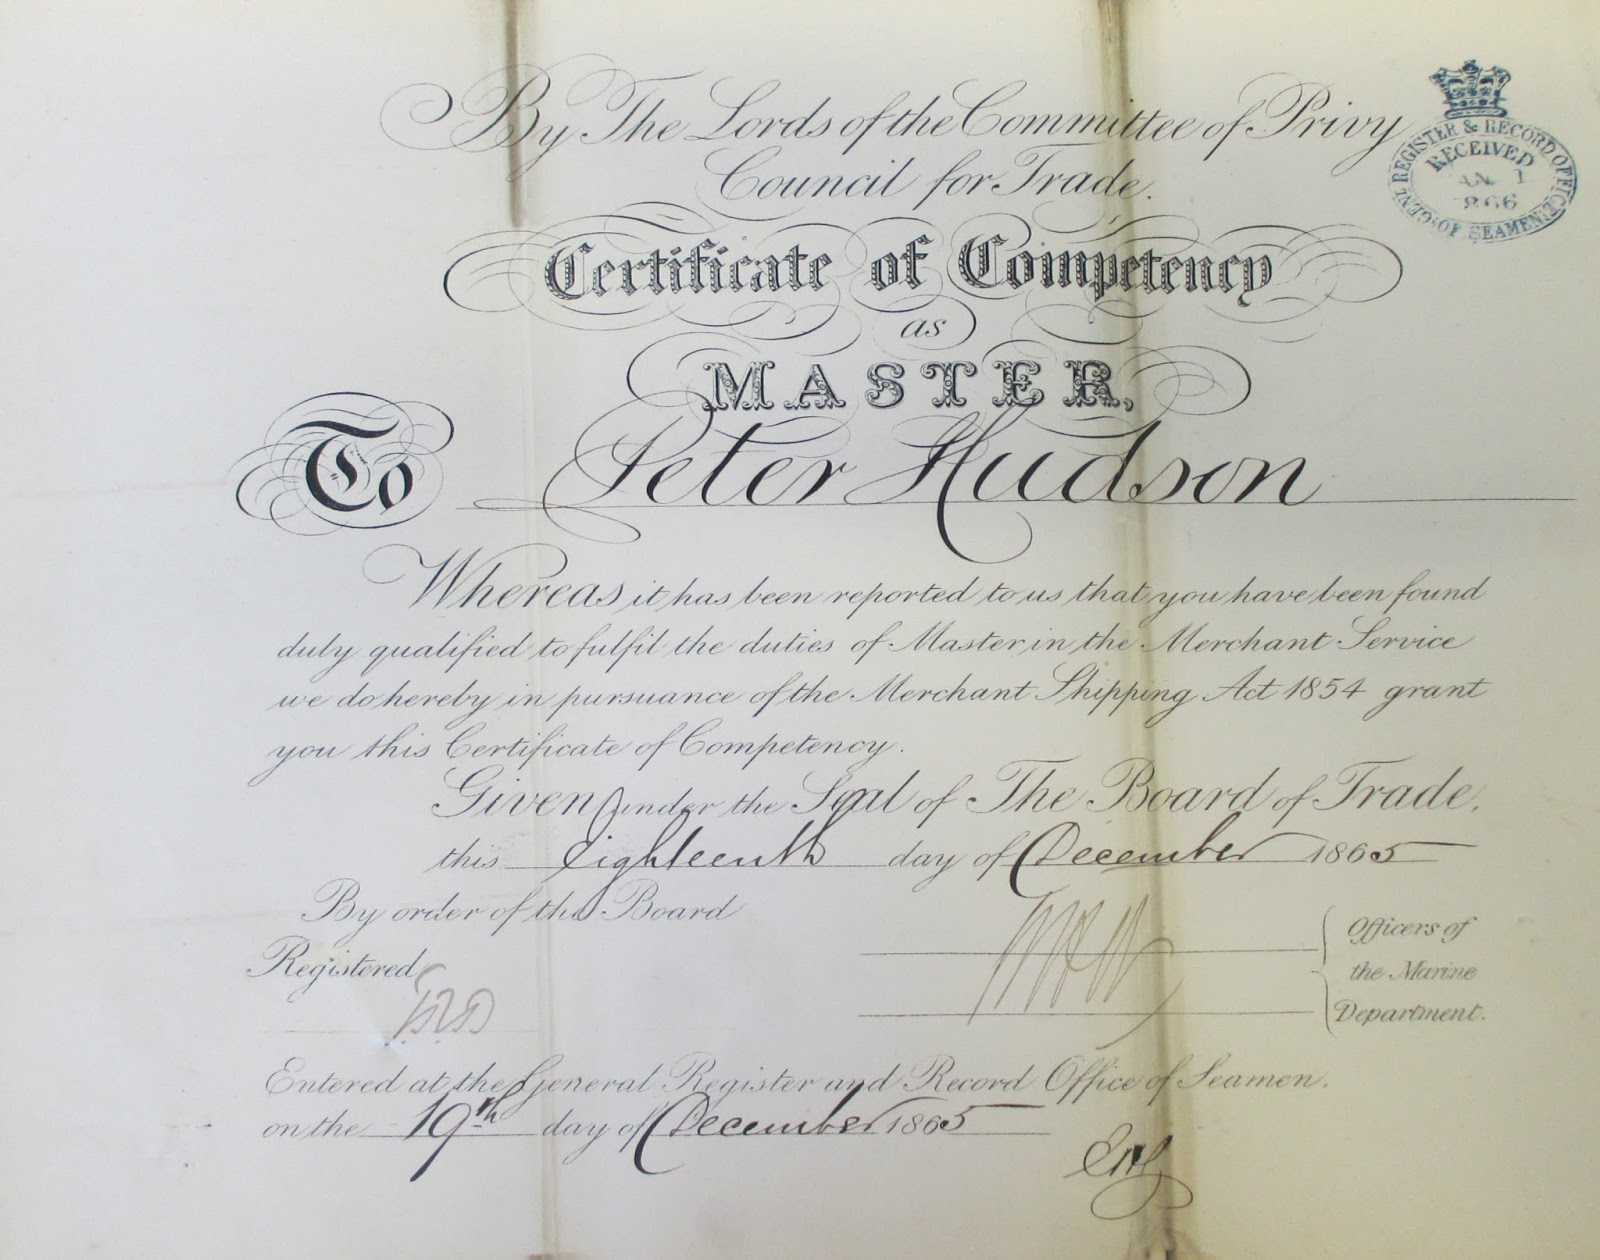 Hudson journeys peter hudson 1837 1872 peter hudsons 1865 certificate of competency as a ships master the original is in the maritime museum archives at greenwich uk xflitez Gallery